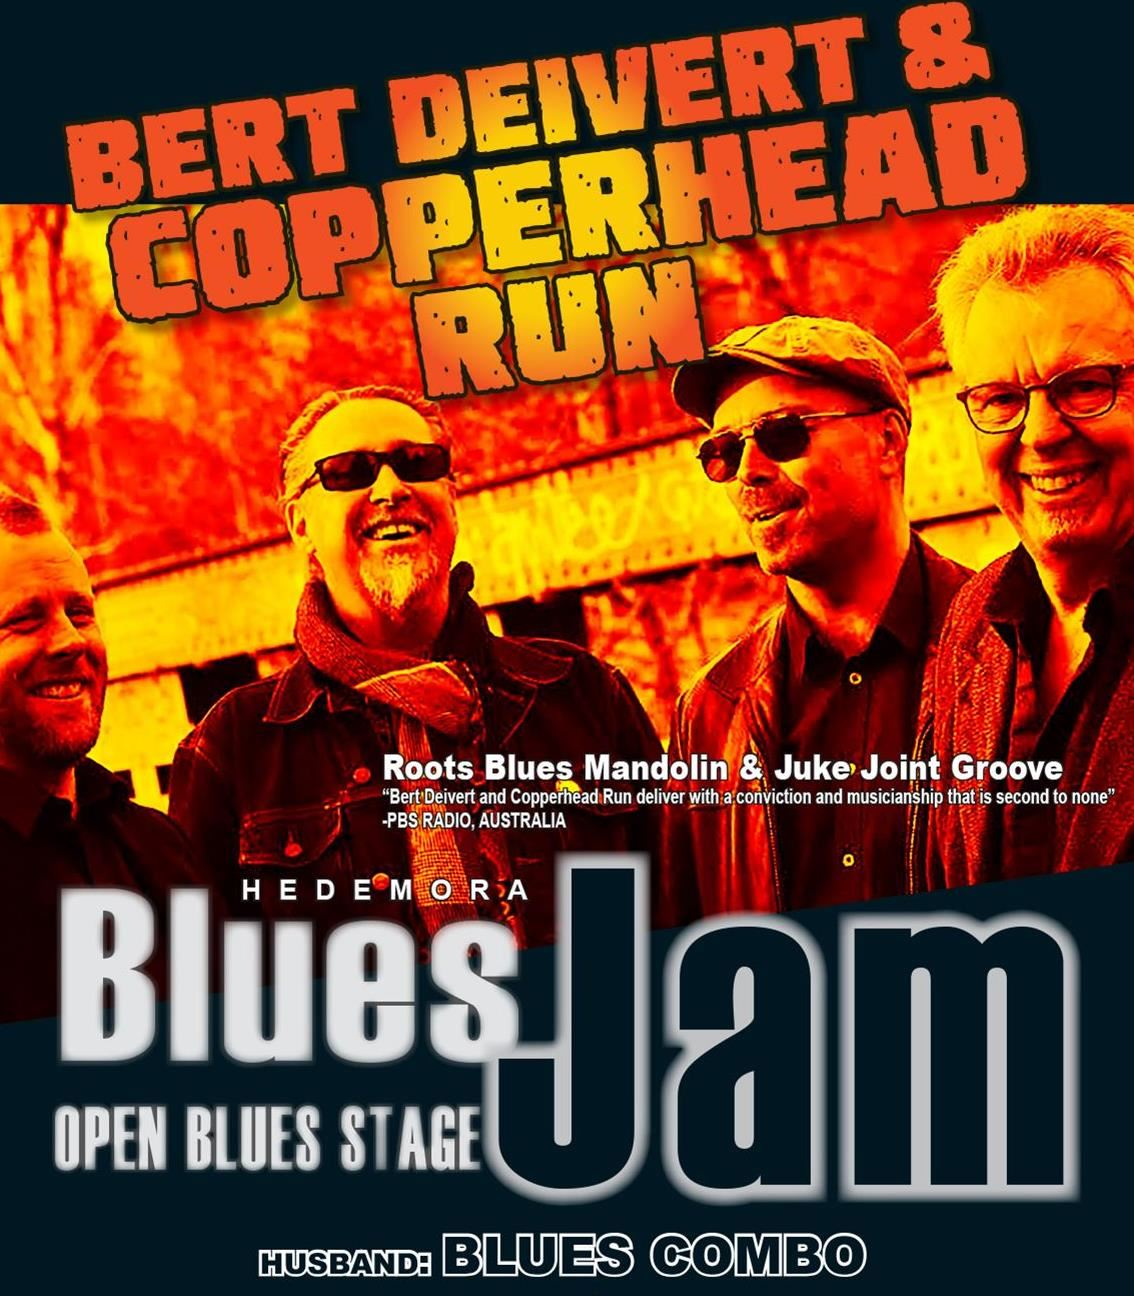 Hedemora Blues Jam och Bert Deivert och Copperhead Run